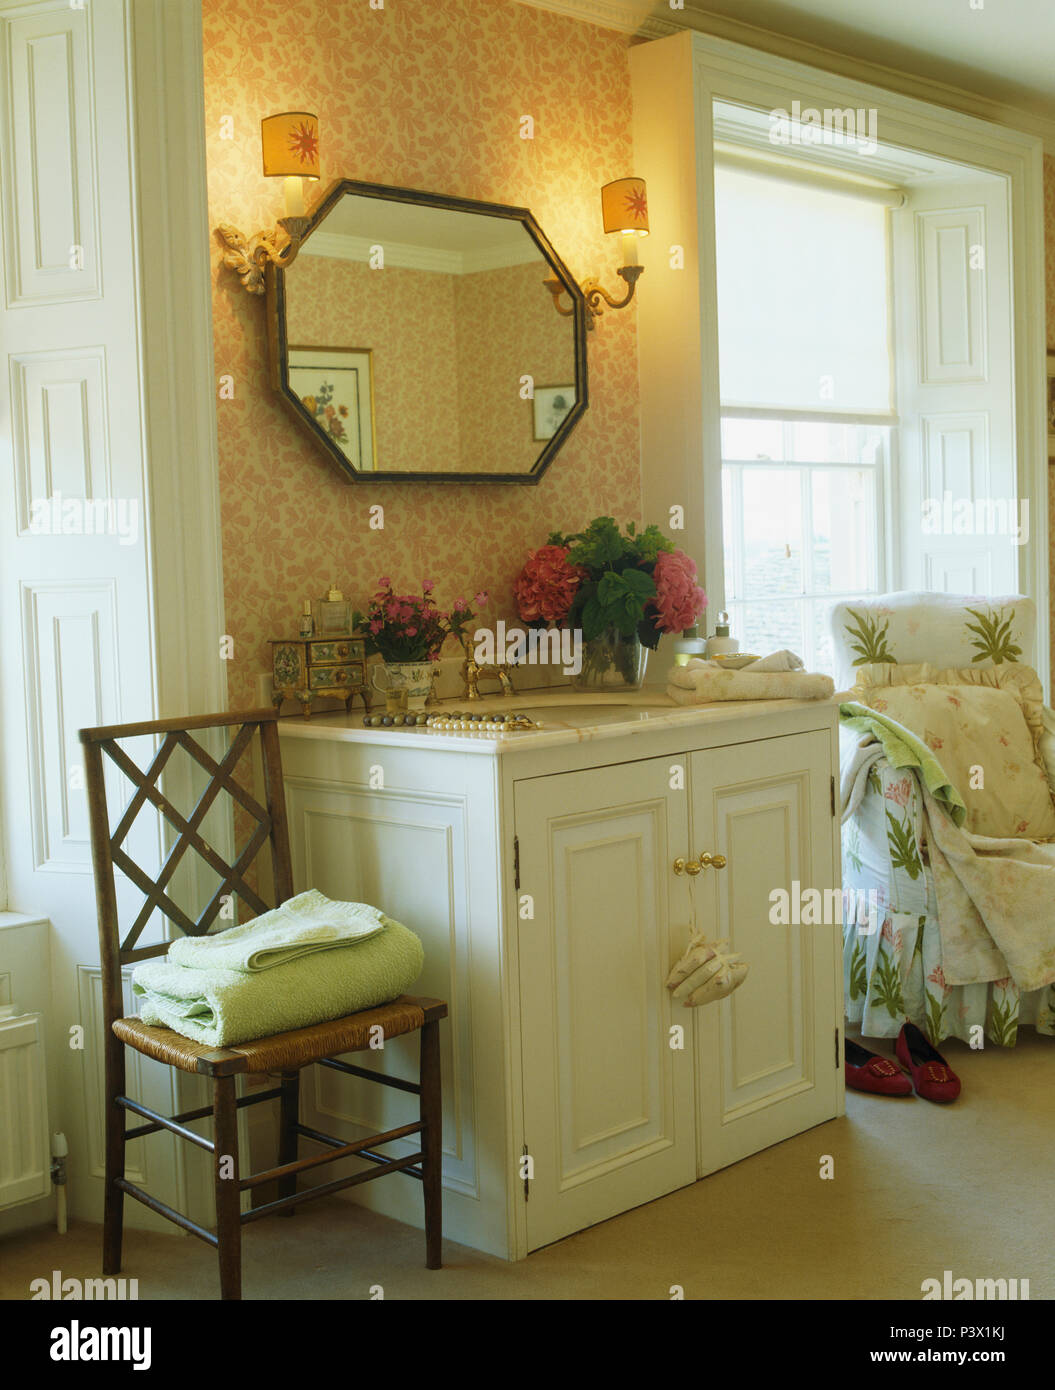 Bedroom with mirror between wall lights vanity unit with basinb - Stock Image